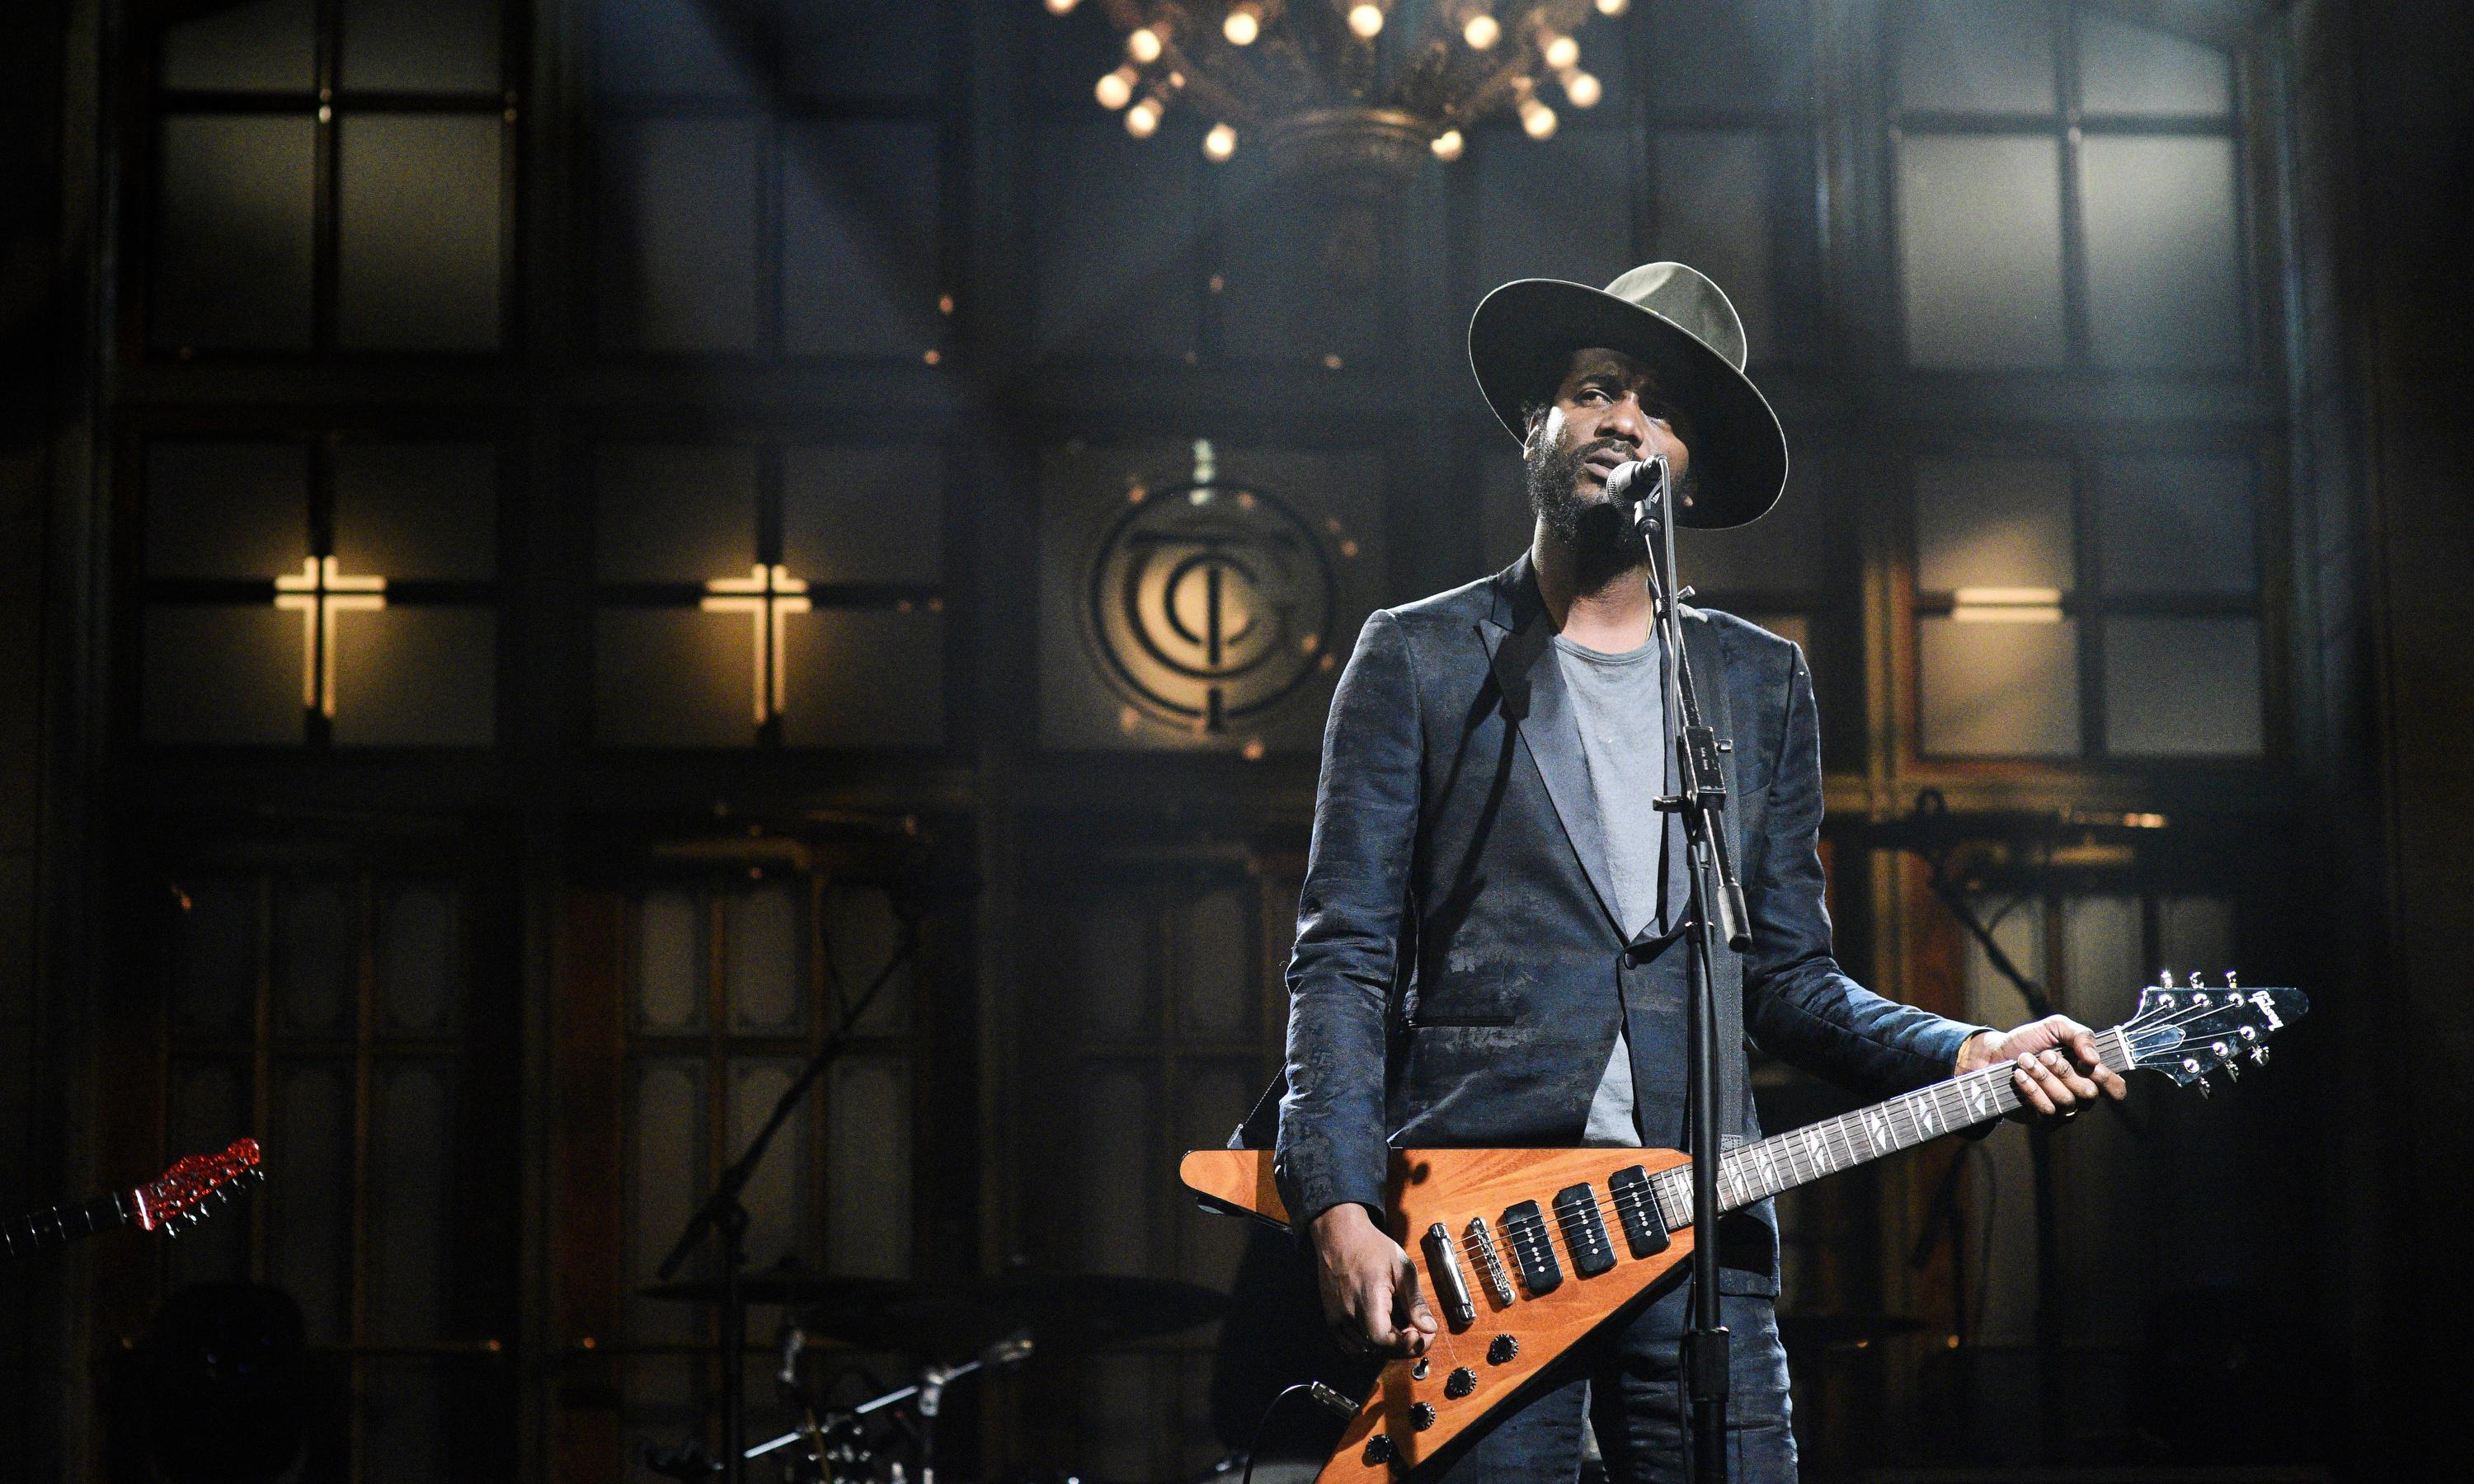 Gary Clark Jr: 'I want to let it be known: this land is your land, but it's mine too'